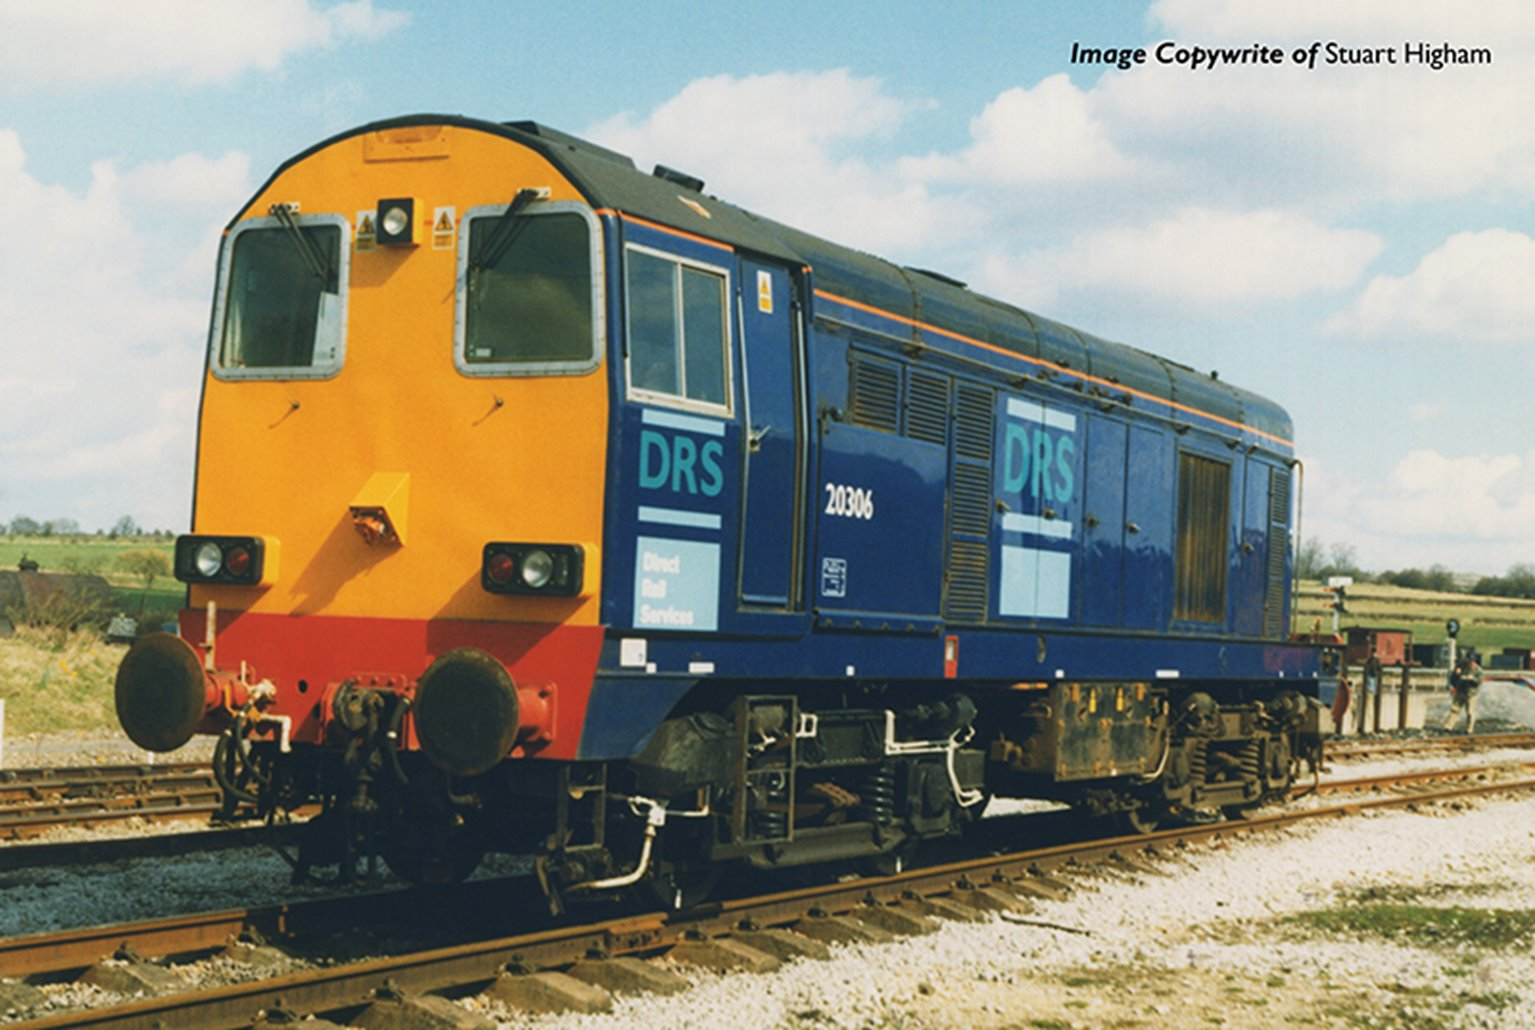 Class 20/3 20306 DRS Direct Rail Services Diesel Locomotive